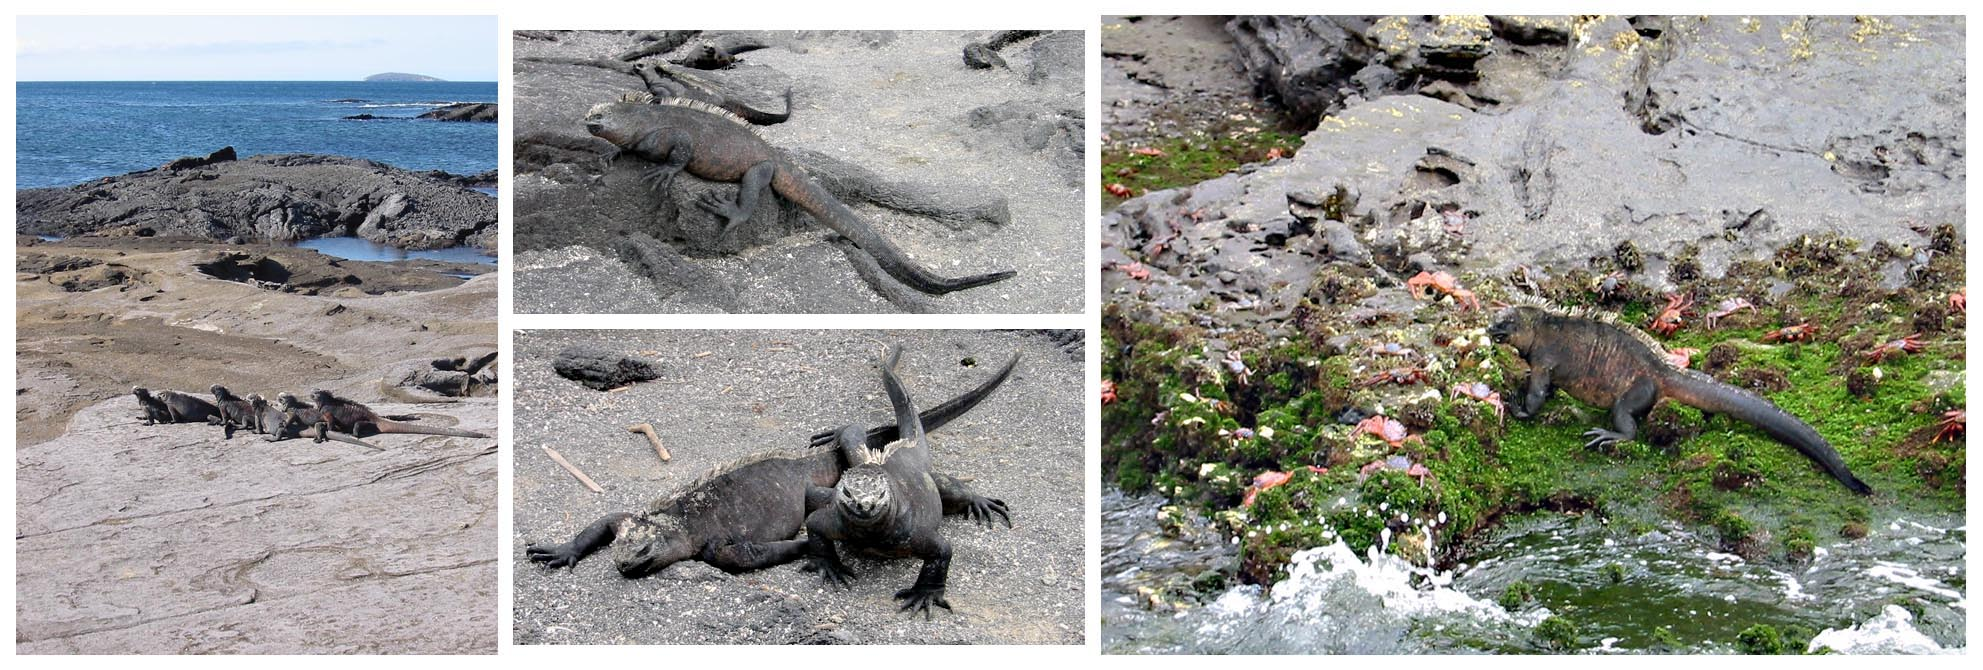 Galapagos Islands  //  Marine Iguanas on the islands of Isla Isabela and Isla Fernandina